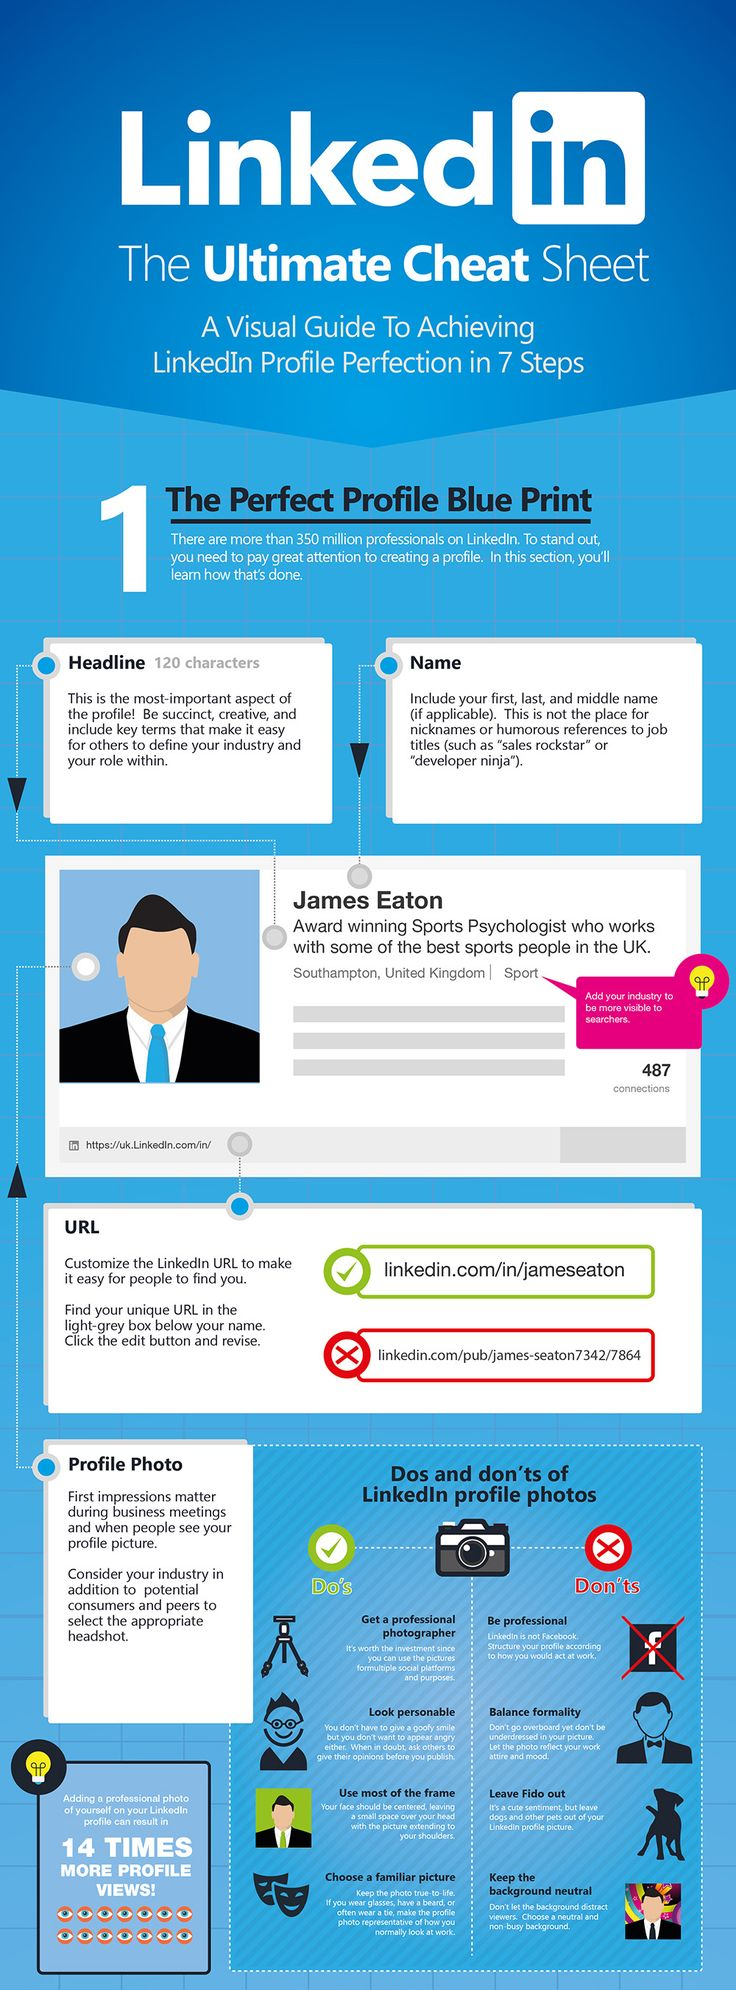 Linkedin: A printable poster on how to use it to get a job  Web Address:http://ift.tt/1S3V6tp/About:This is a free printable guide that you can put up in your ICT room to show pupils how LinkedIn can be used to increase their prospects of gaining a job once they leave education.